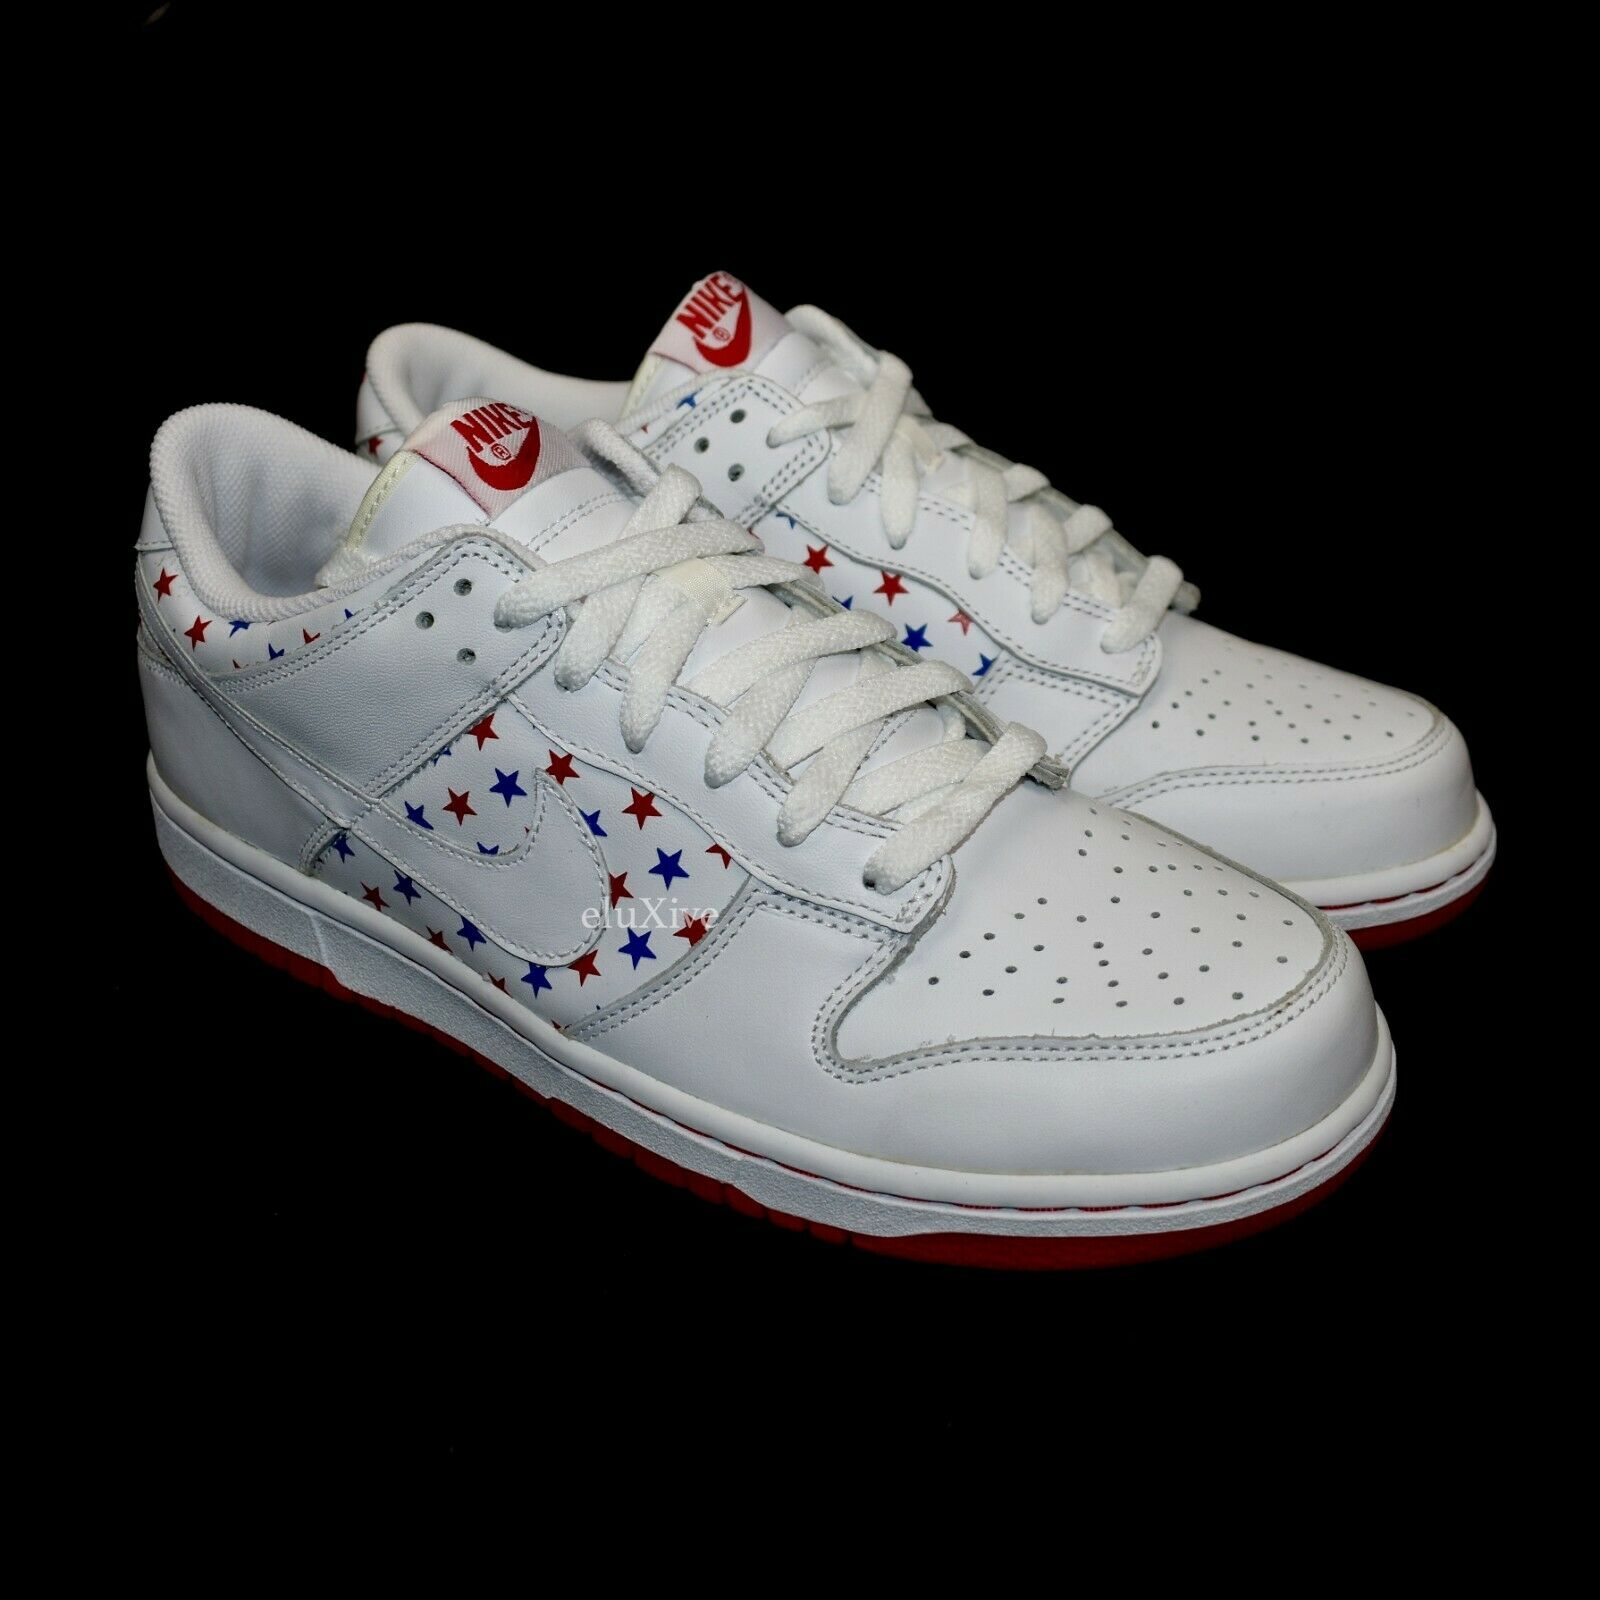 NWT Nike Dunk Low Red White bluee Stars July 4th Independence Day 2005 AUTHENTIC